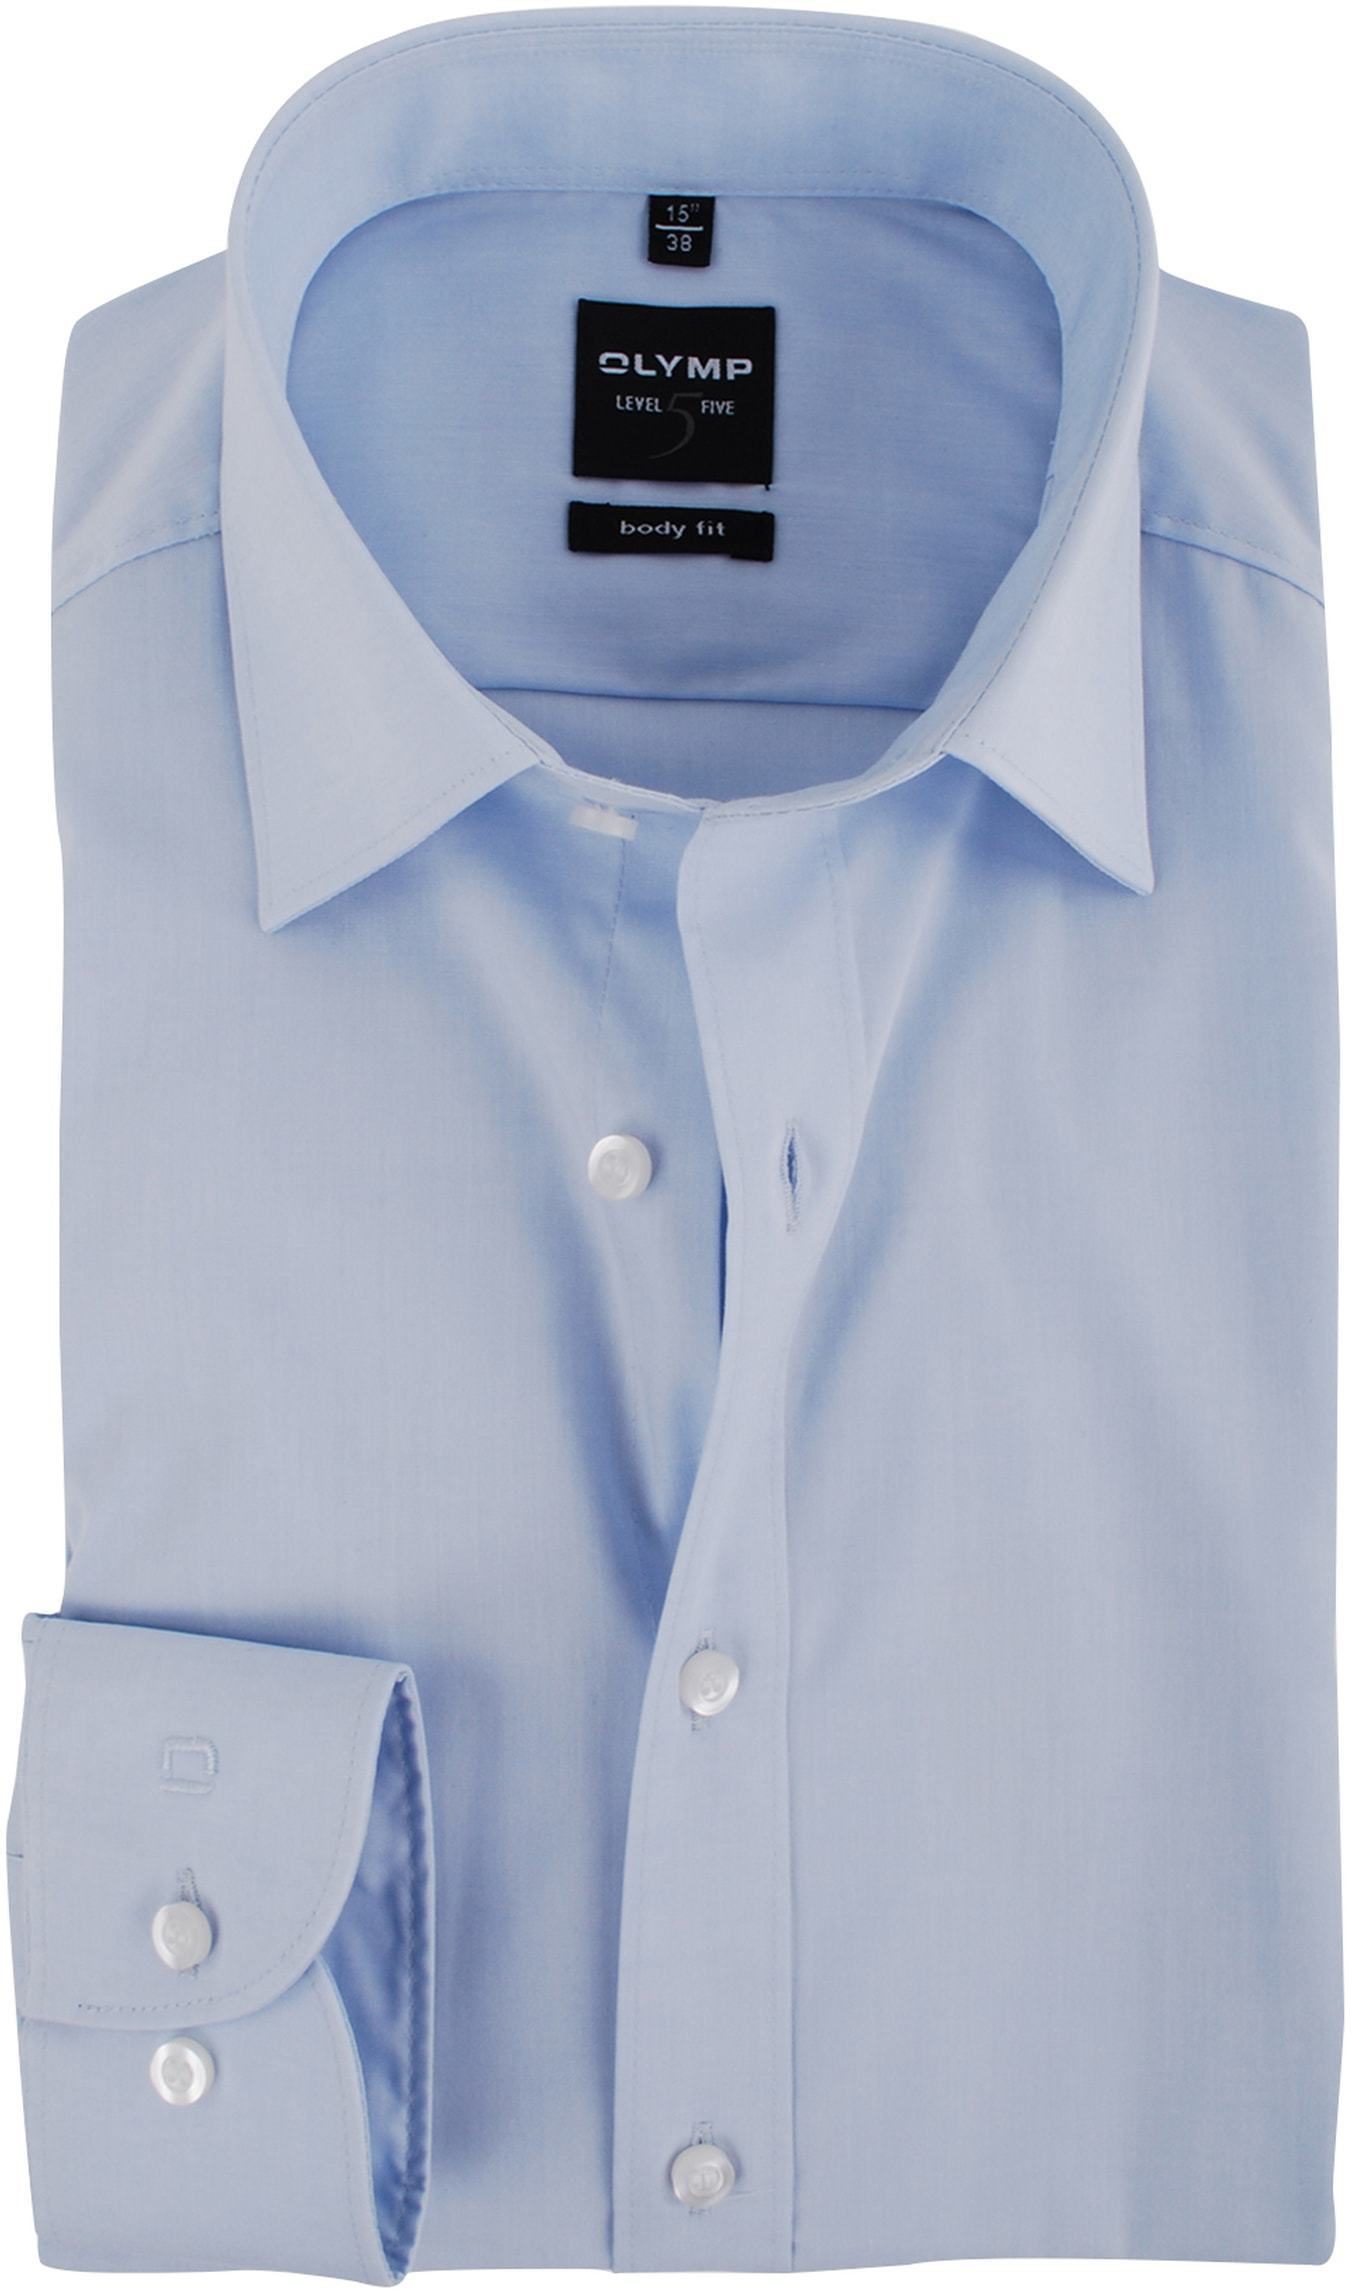 Olymp Level Five Shirt Body-fit Light Blue foto 0